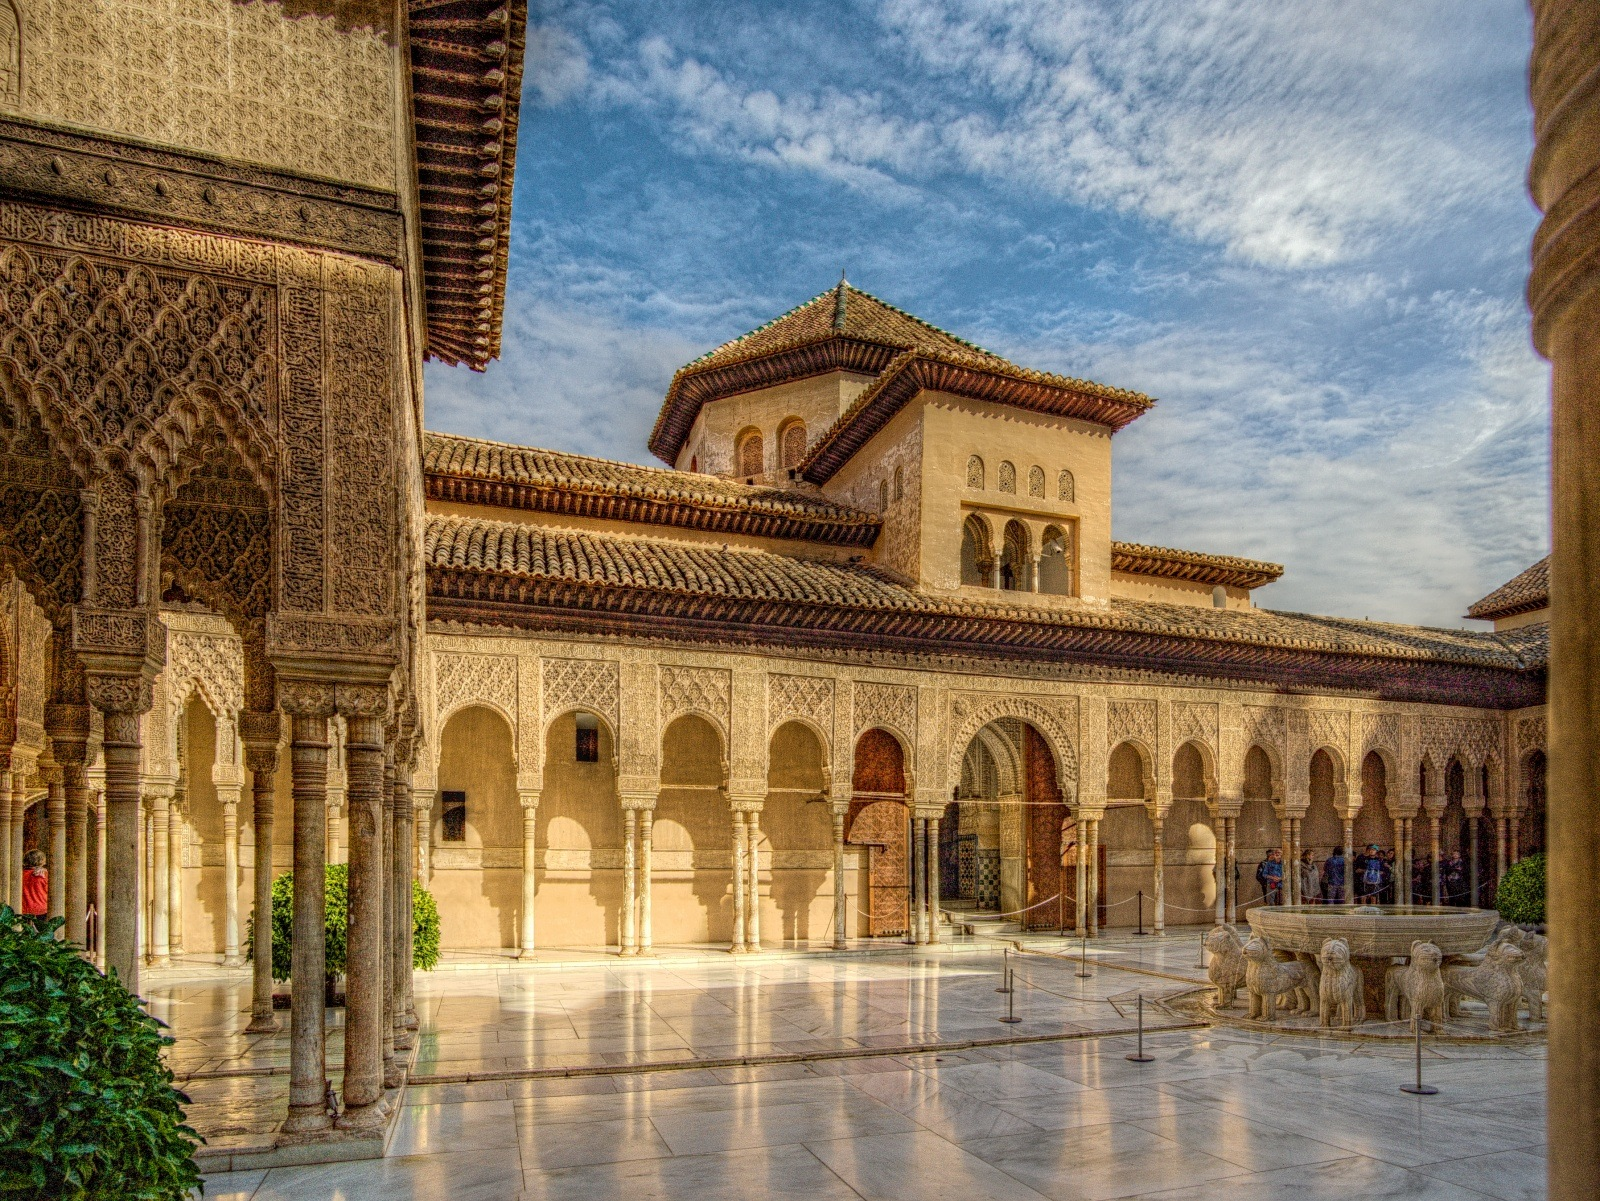 Alhambra by fgred